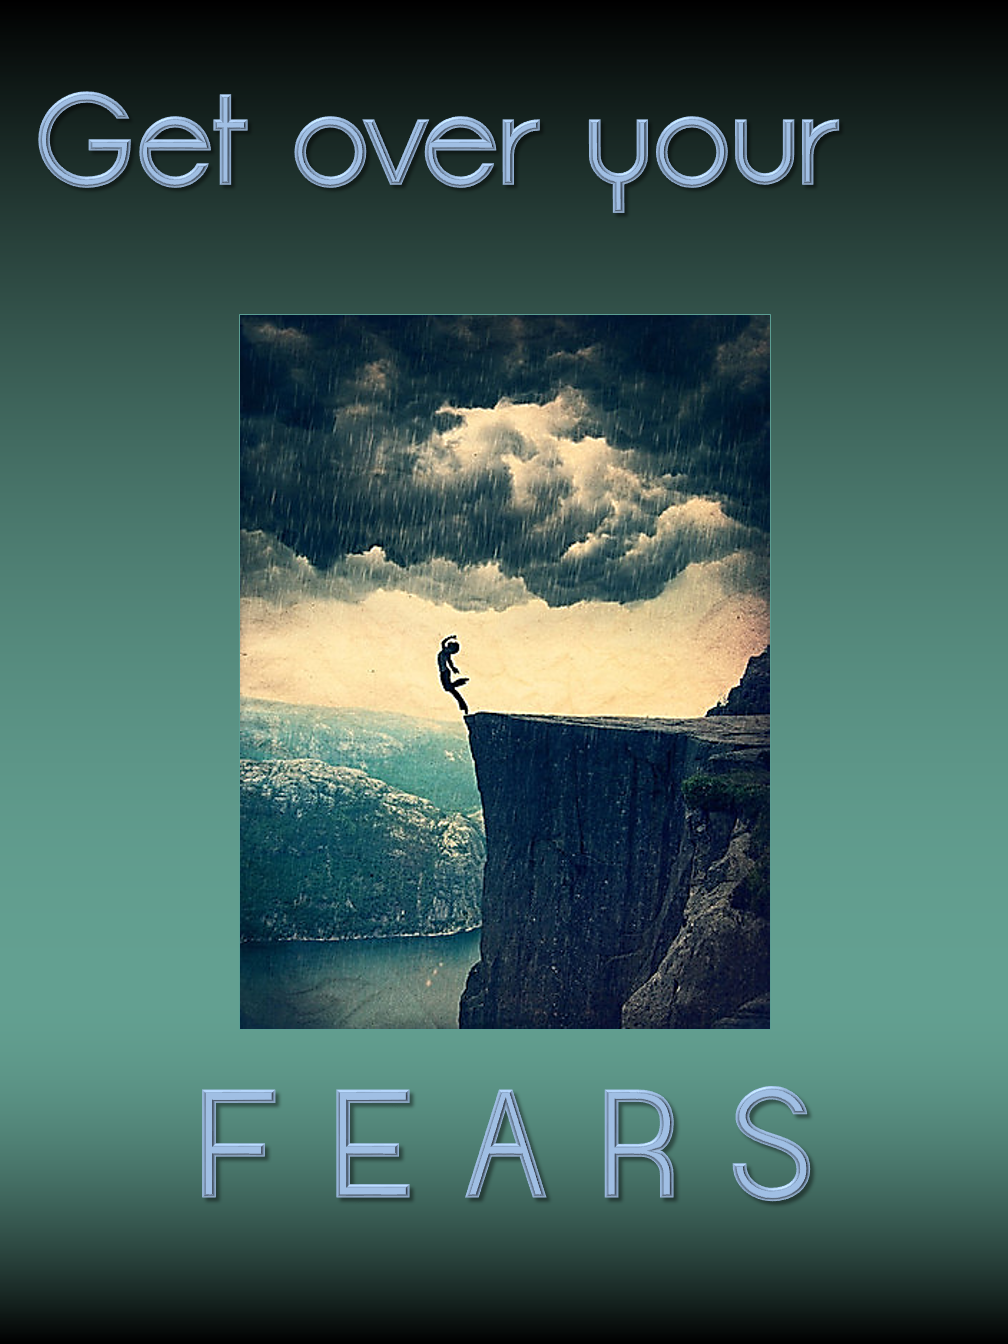 Get over your FEARS!